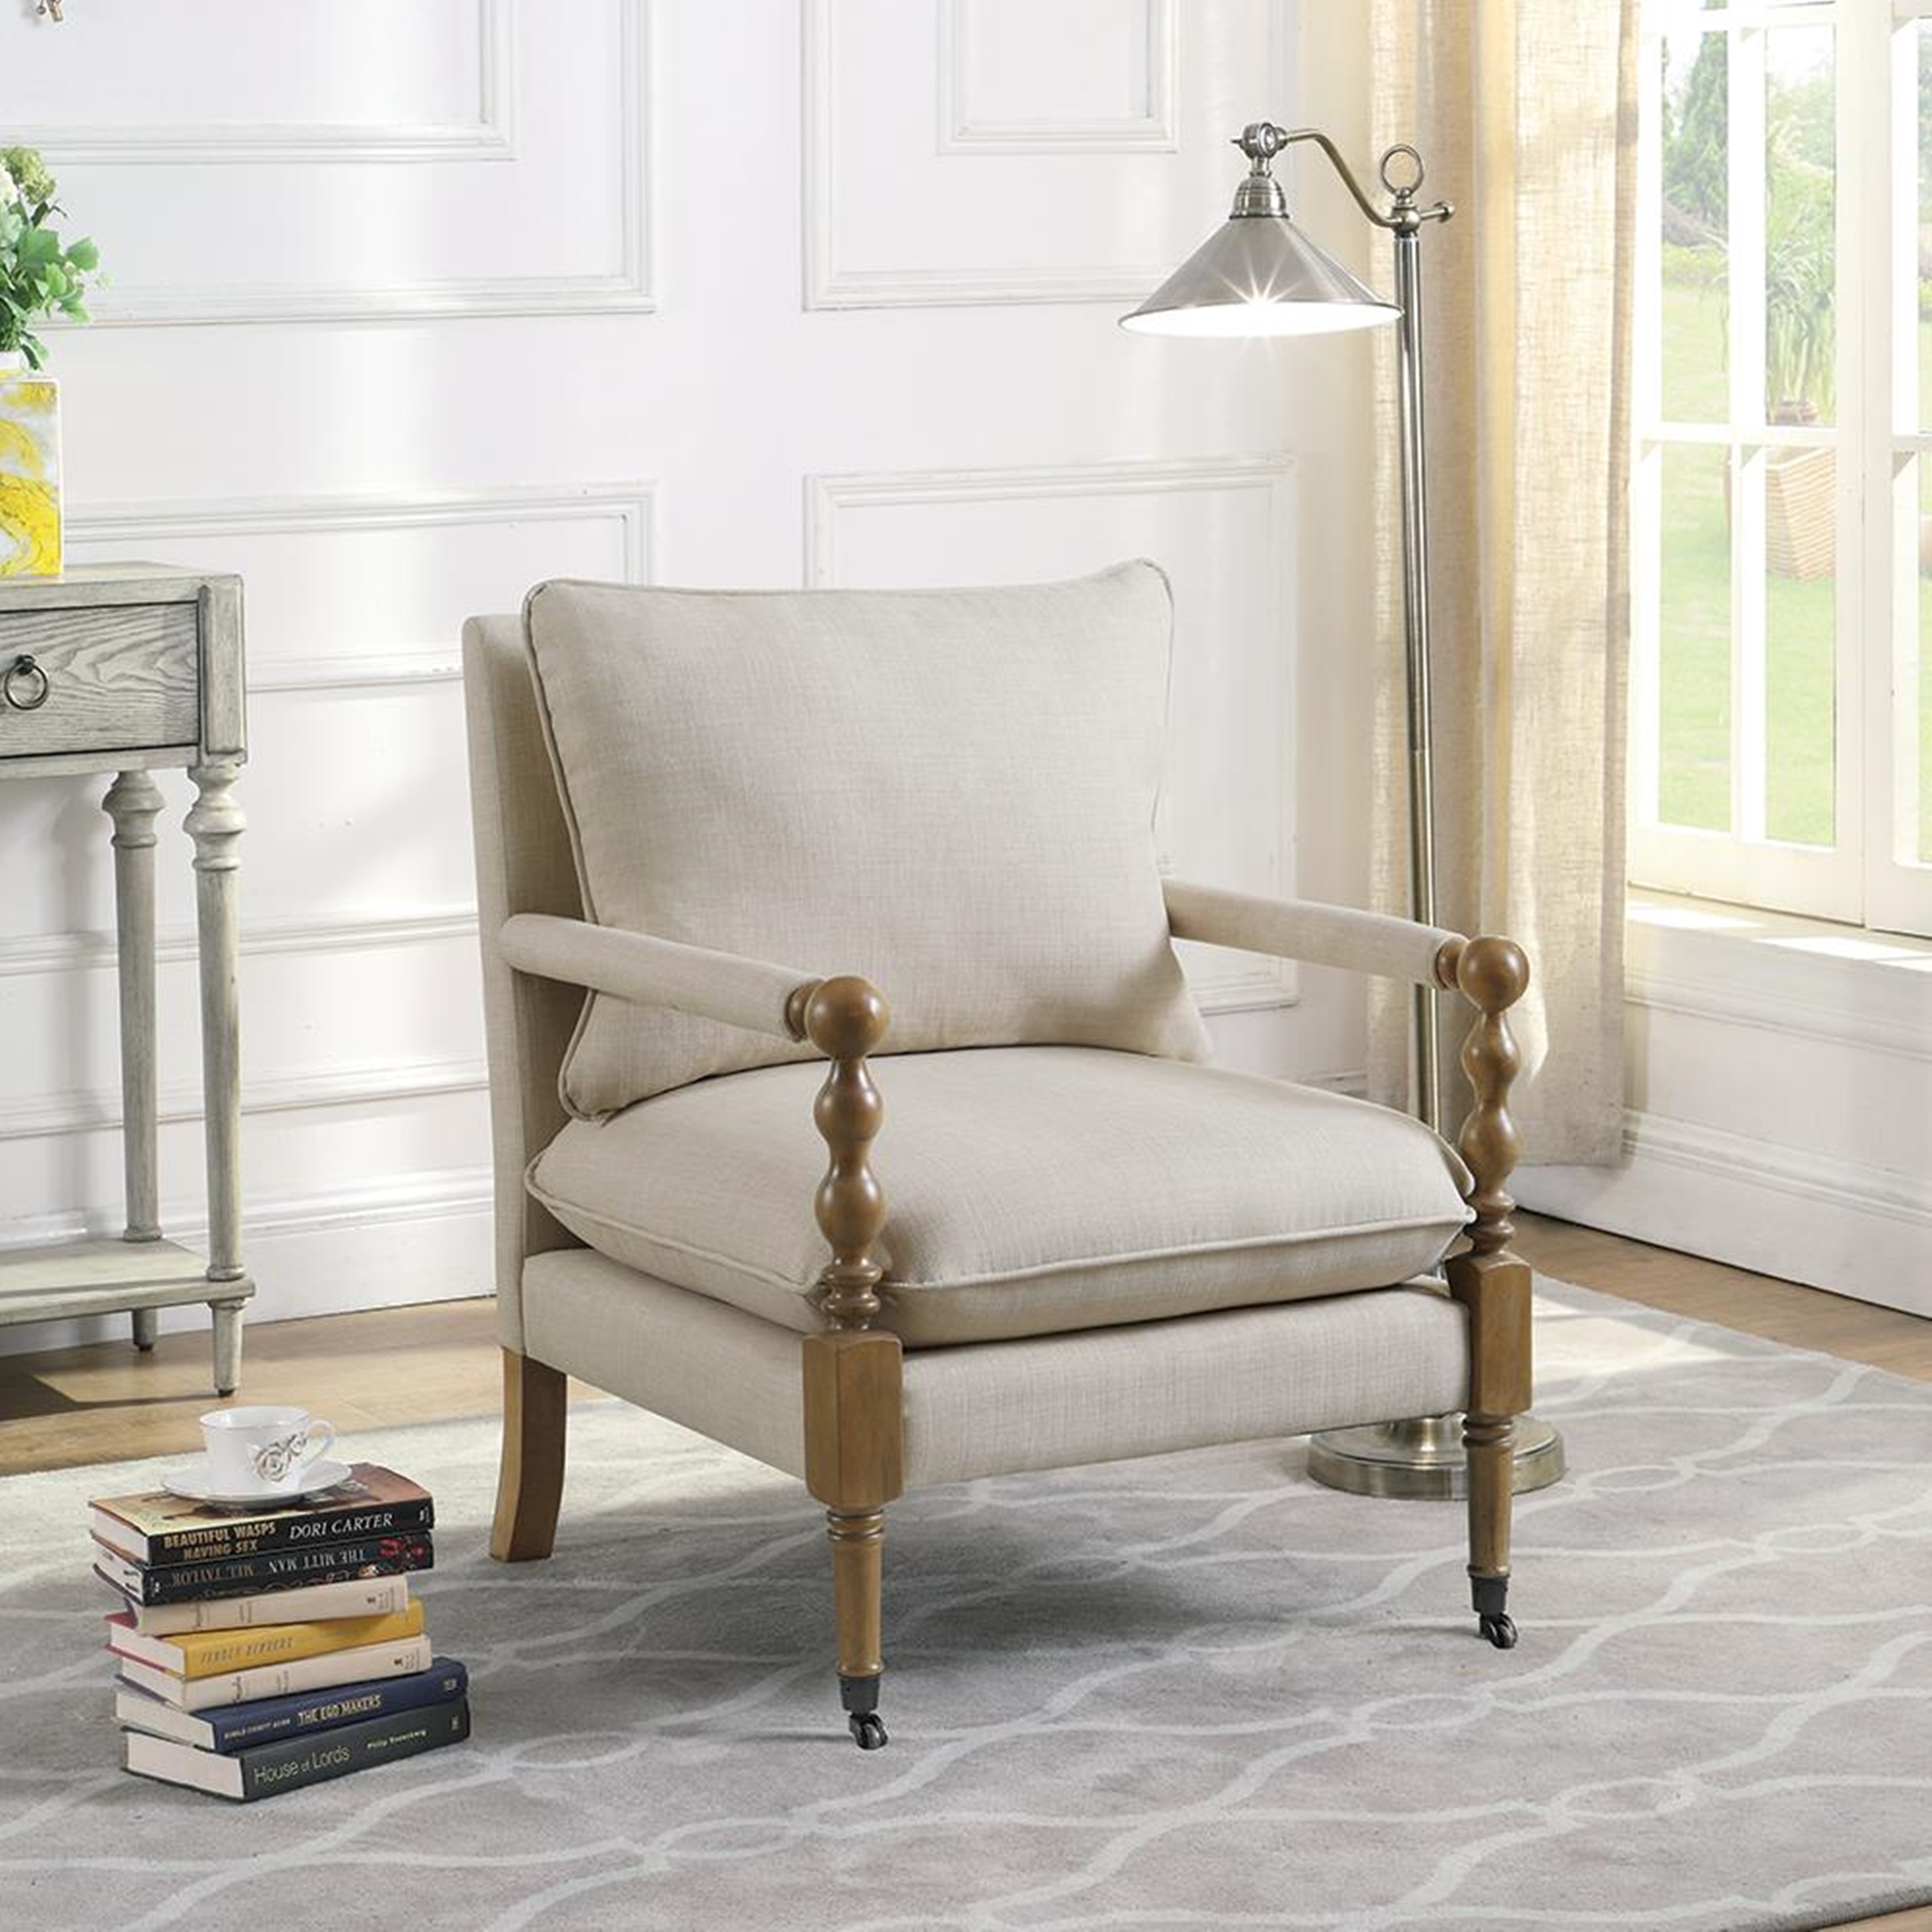 903058 - Accent Chair